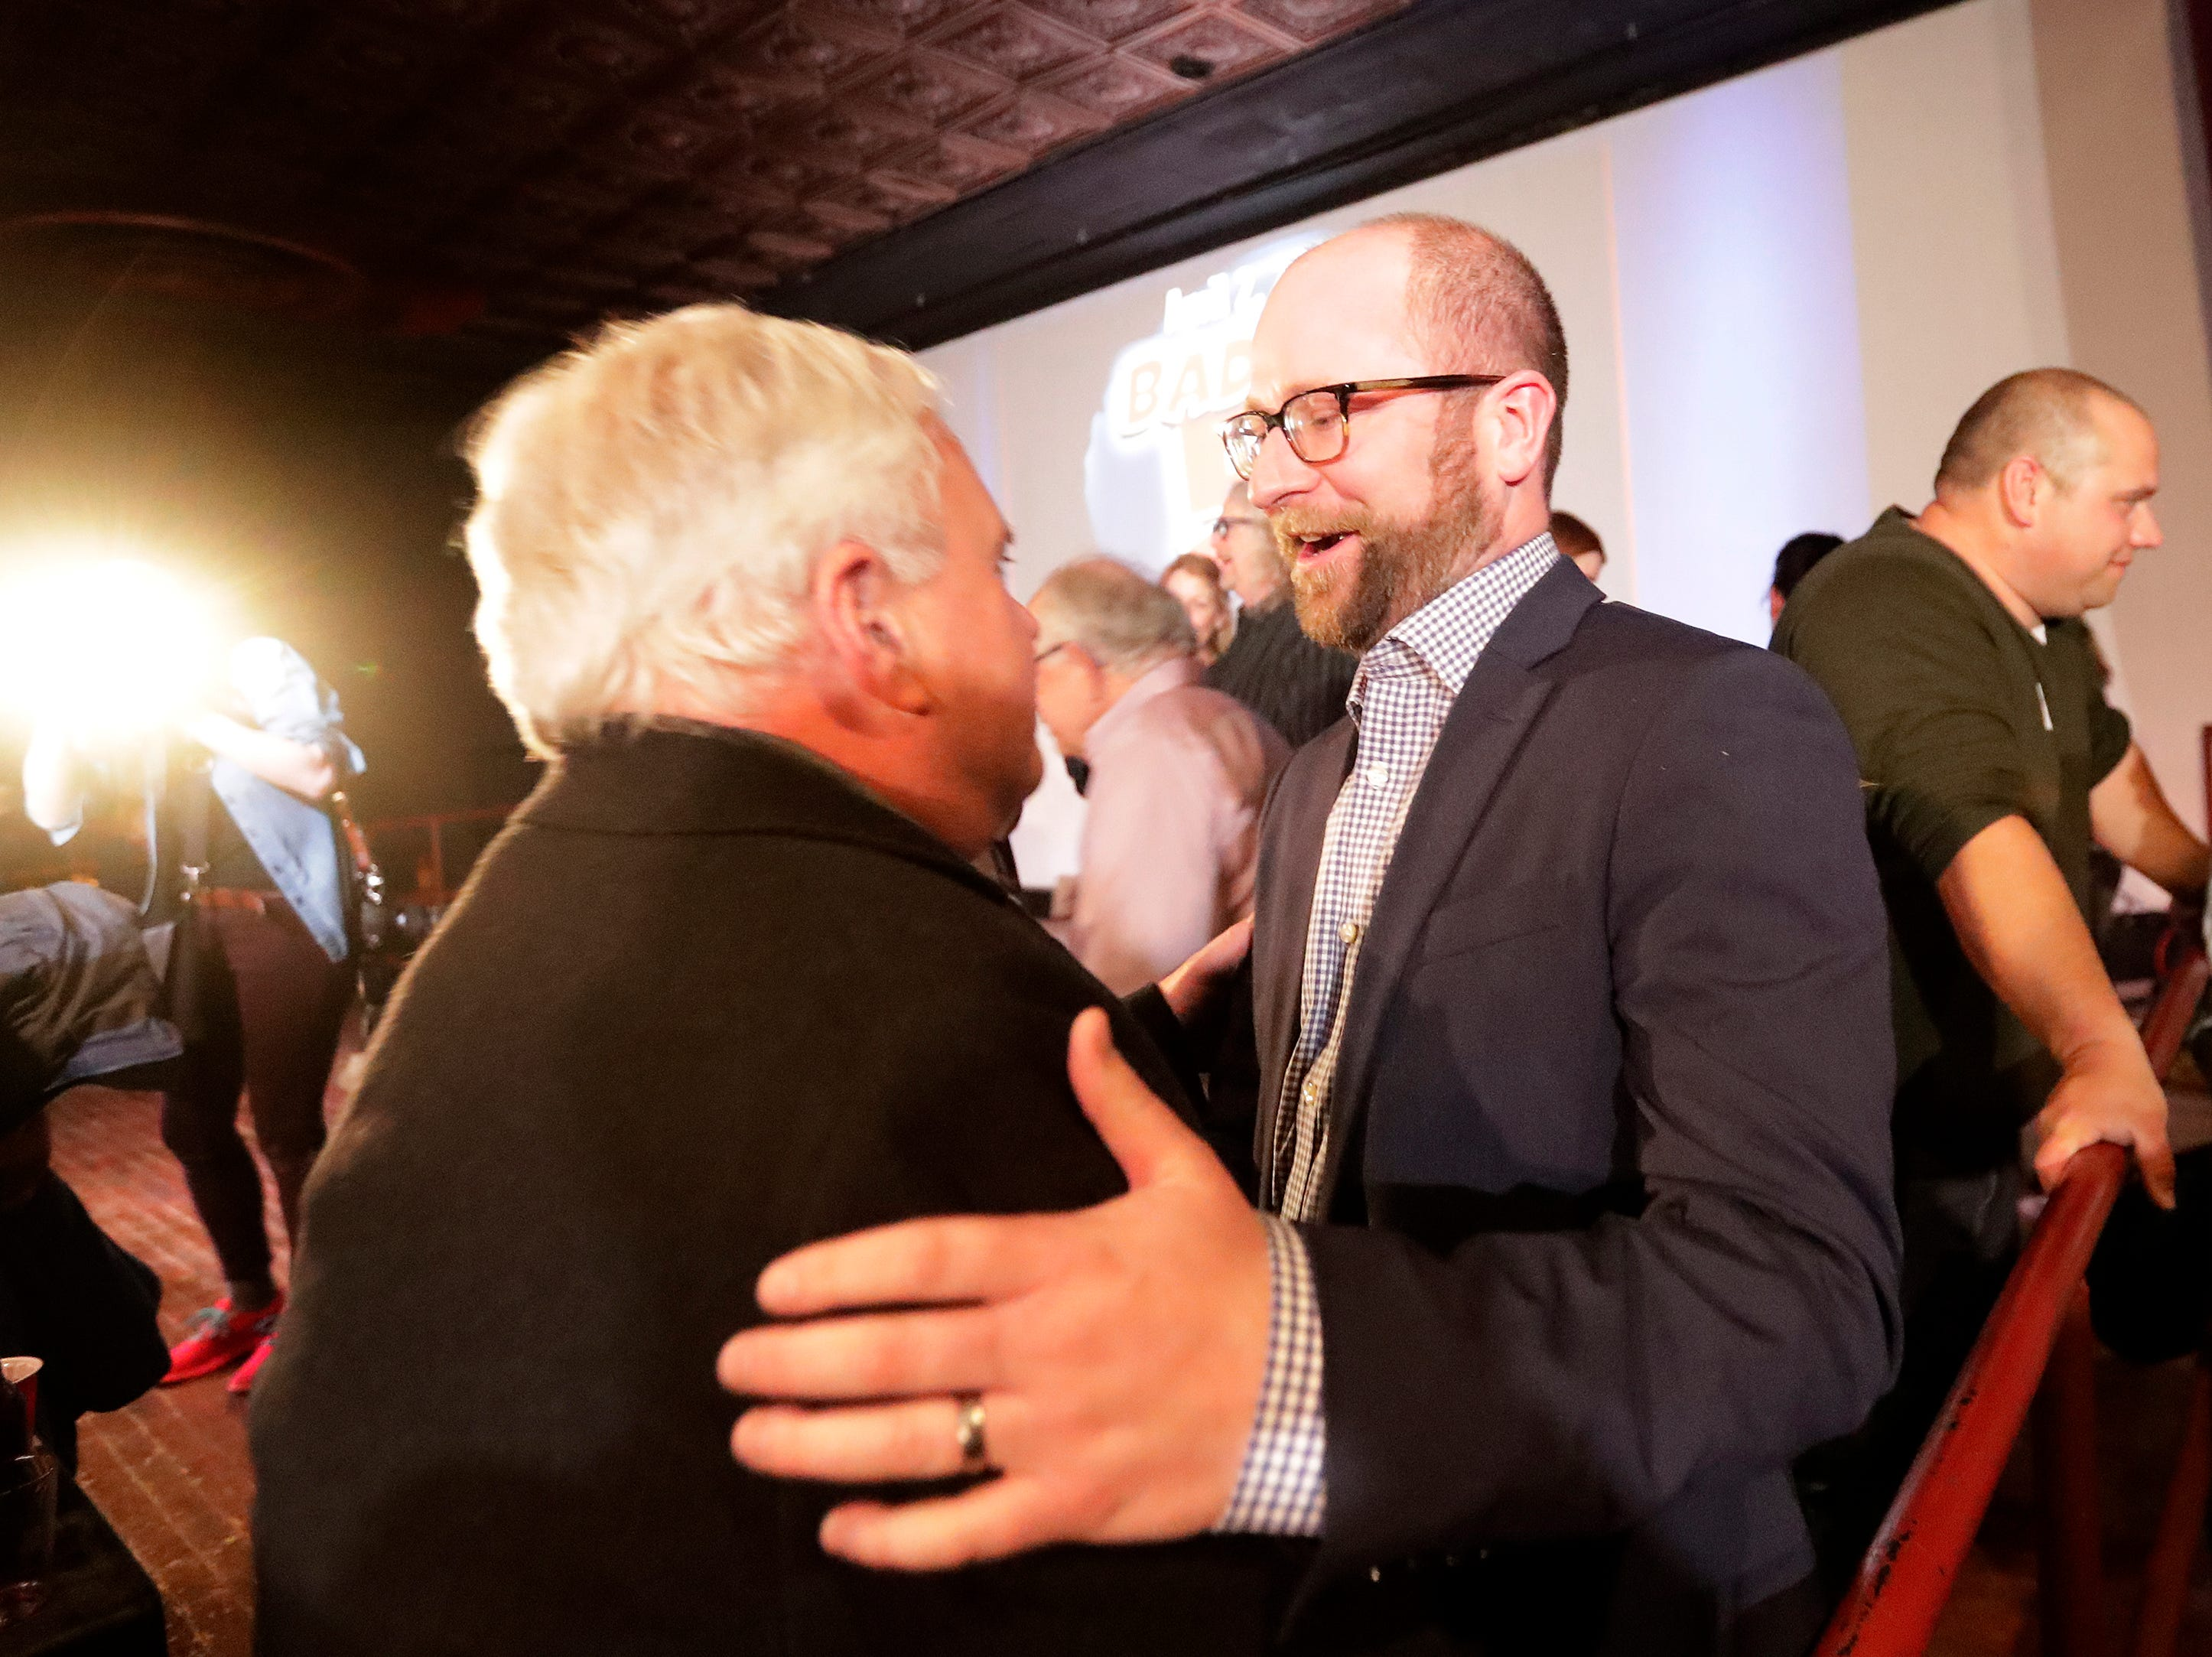 Mayor-elect Eric Genrich greets supporters on election night in at the Tarlton Theater on Tuesday, April 2, 2019 in Green Bay, Wis.